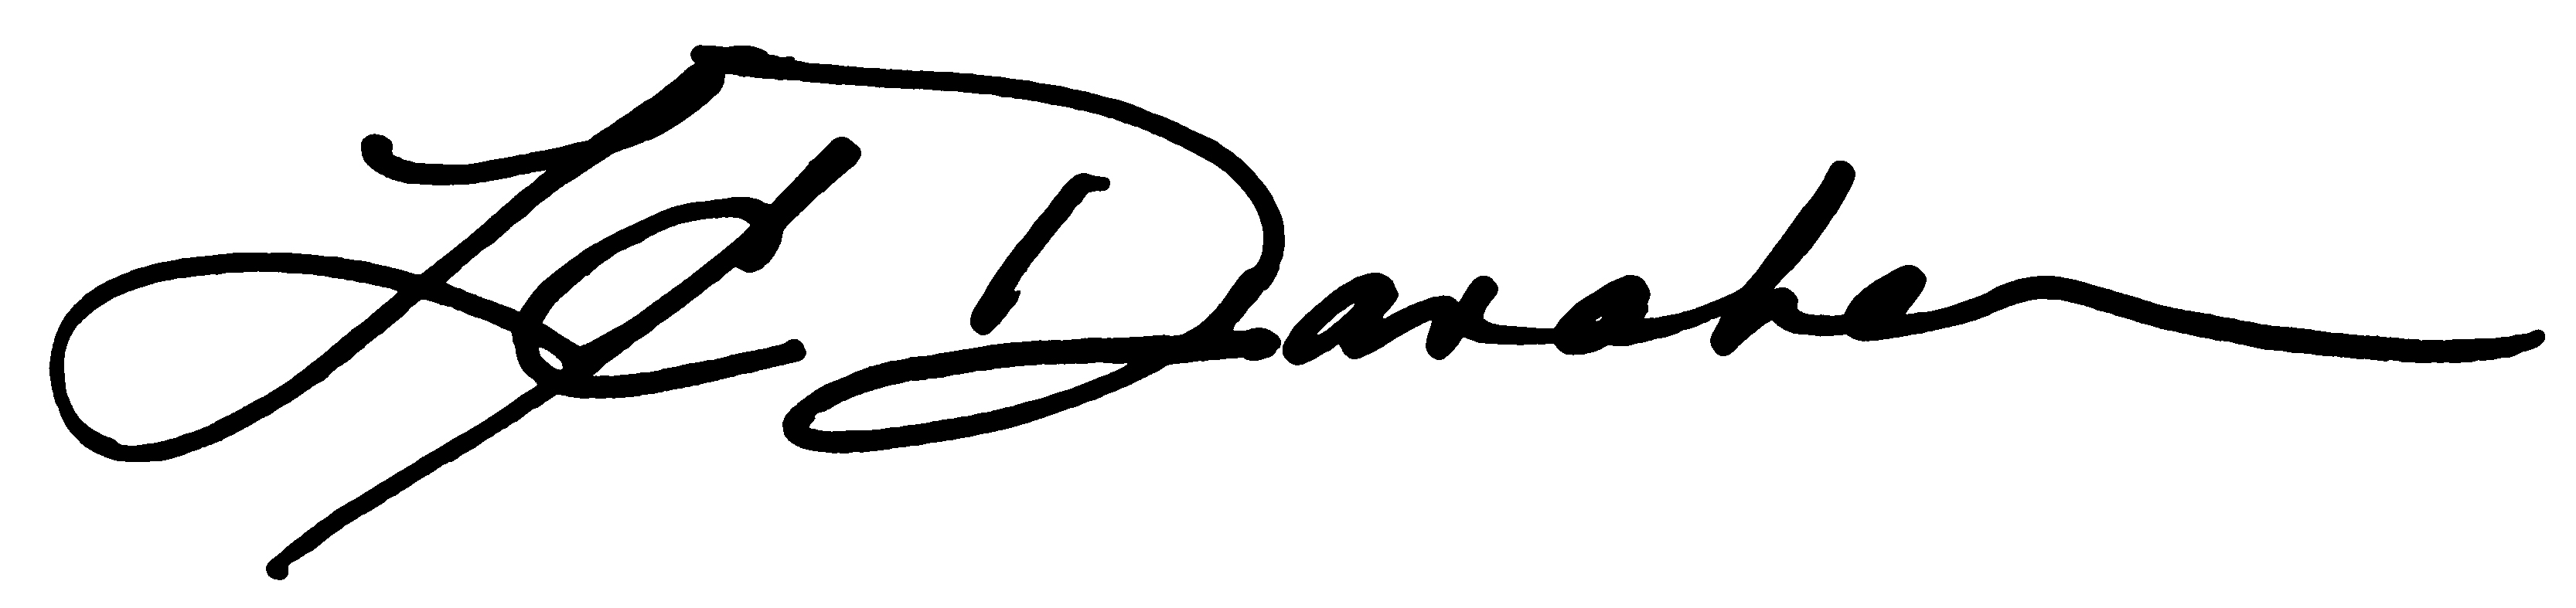 Lin Danaher's Signature